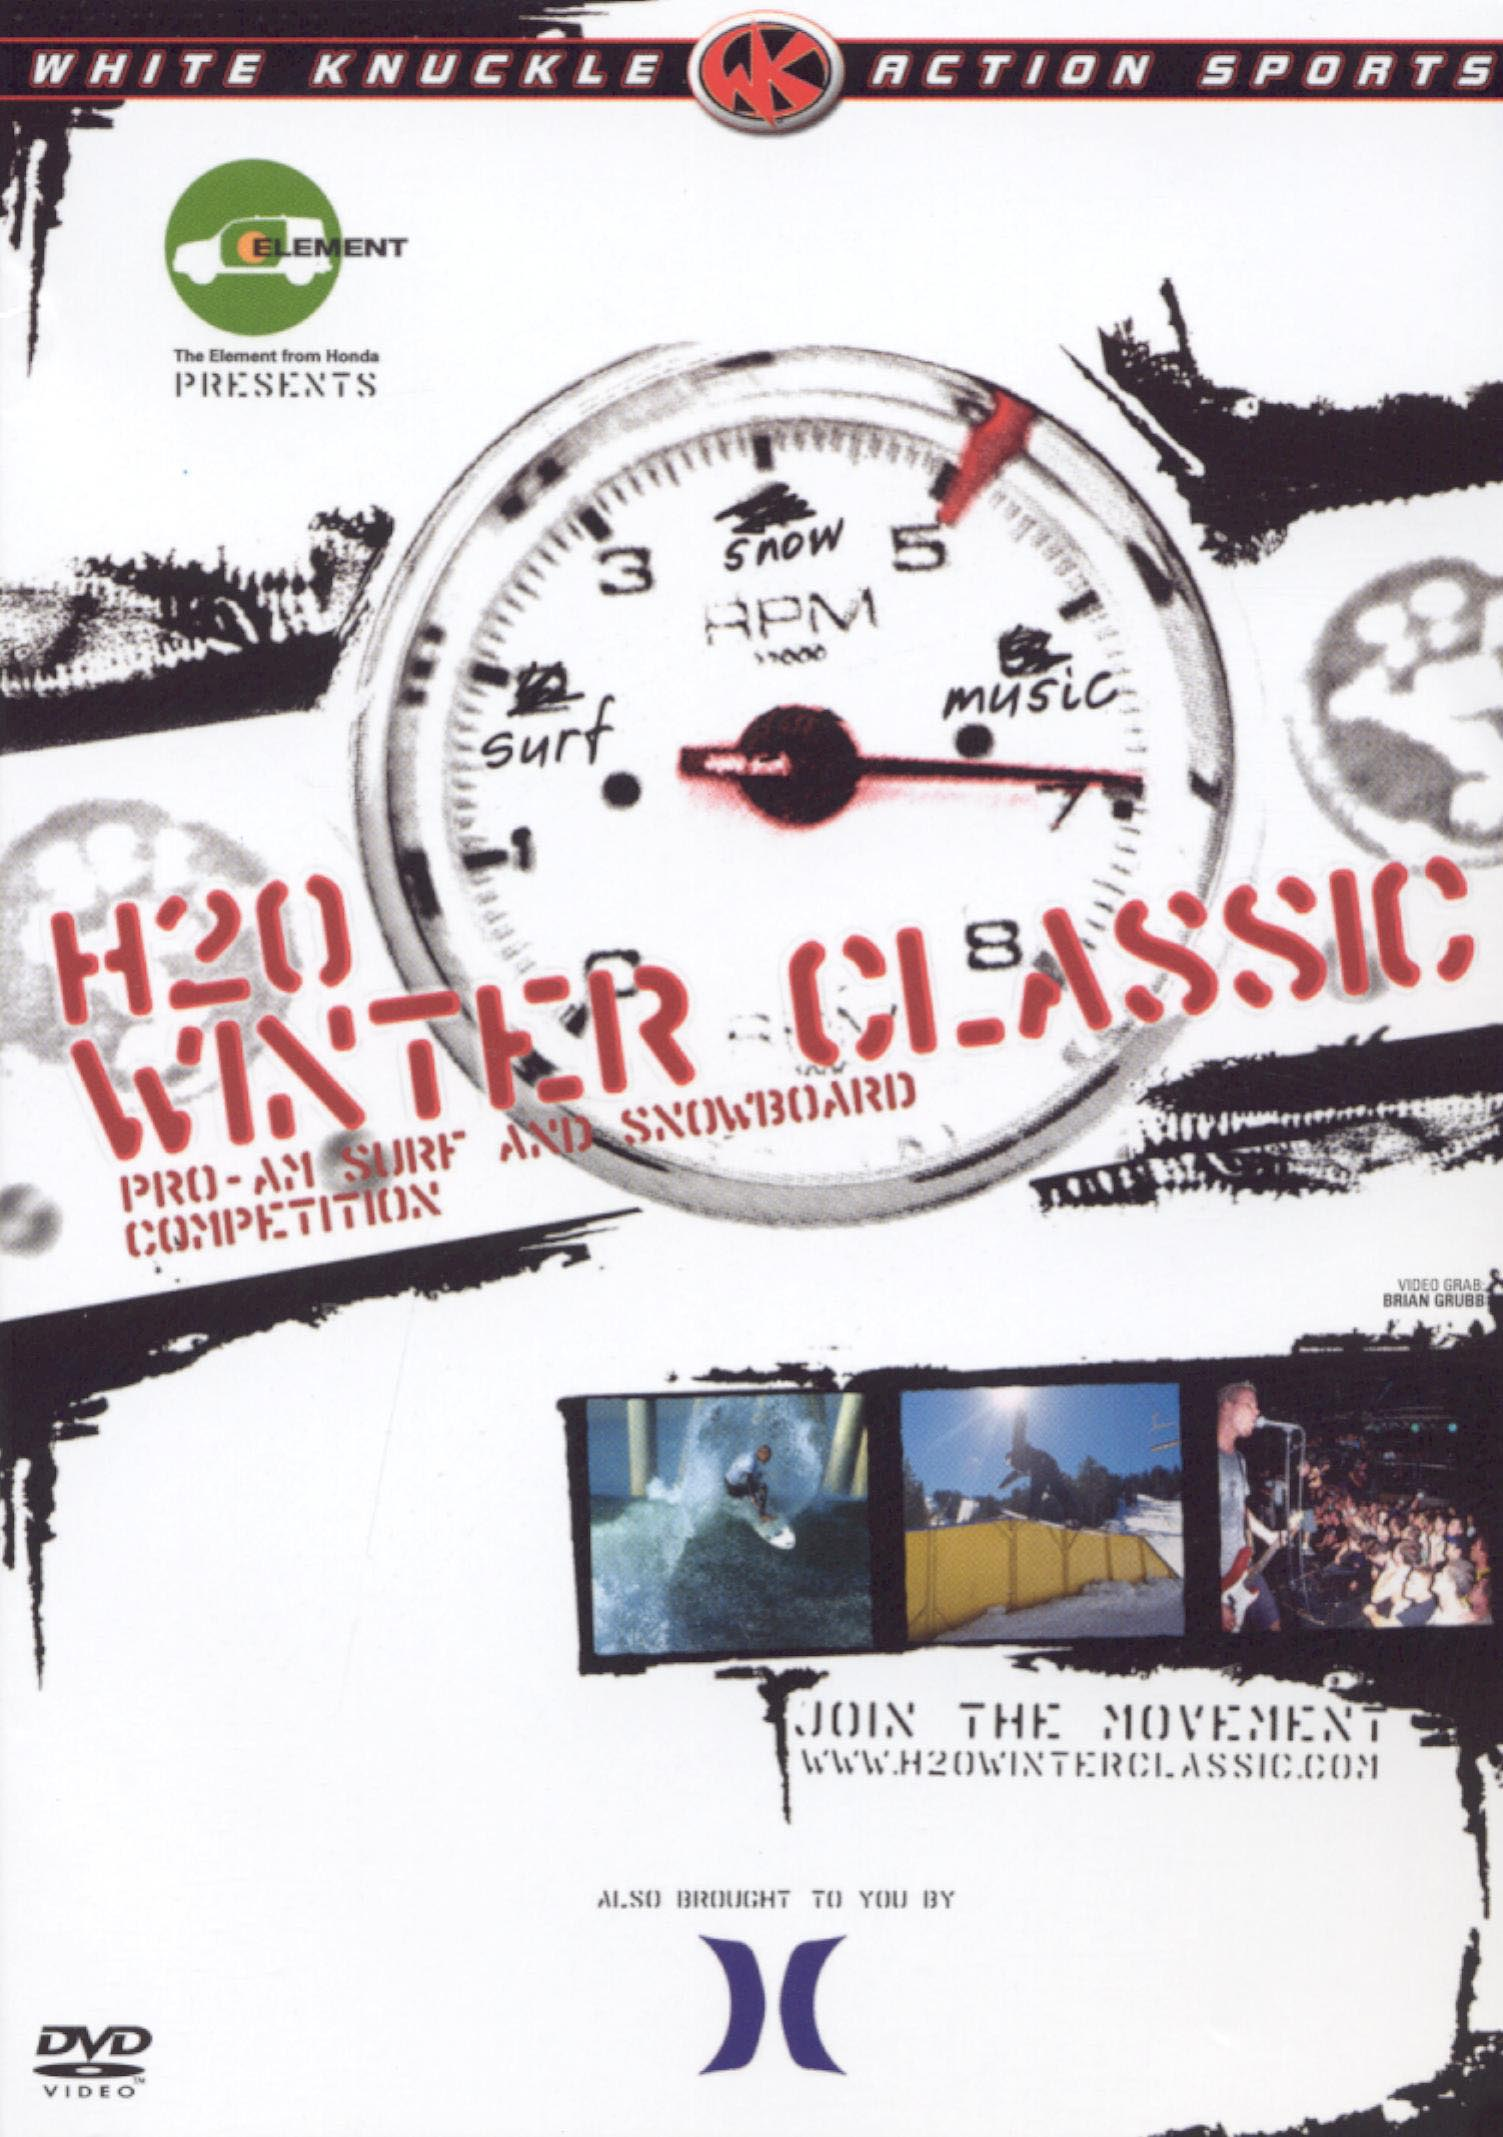 White Knuckle Extreme: H20 2003 Winter Classic